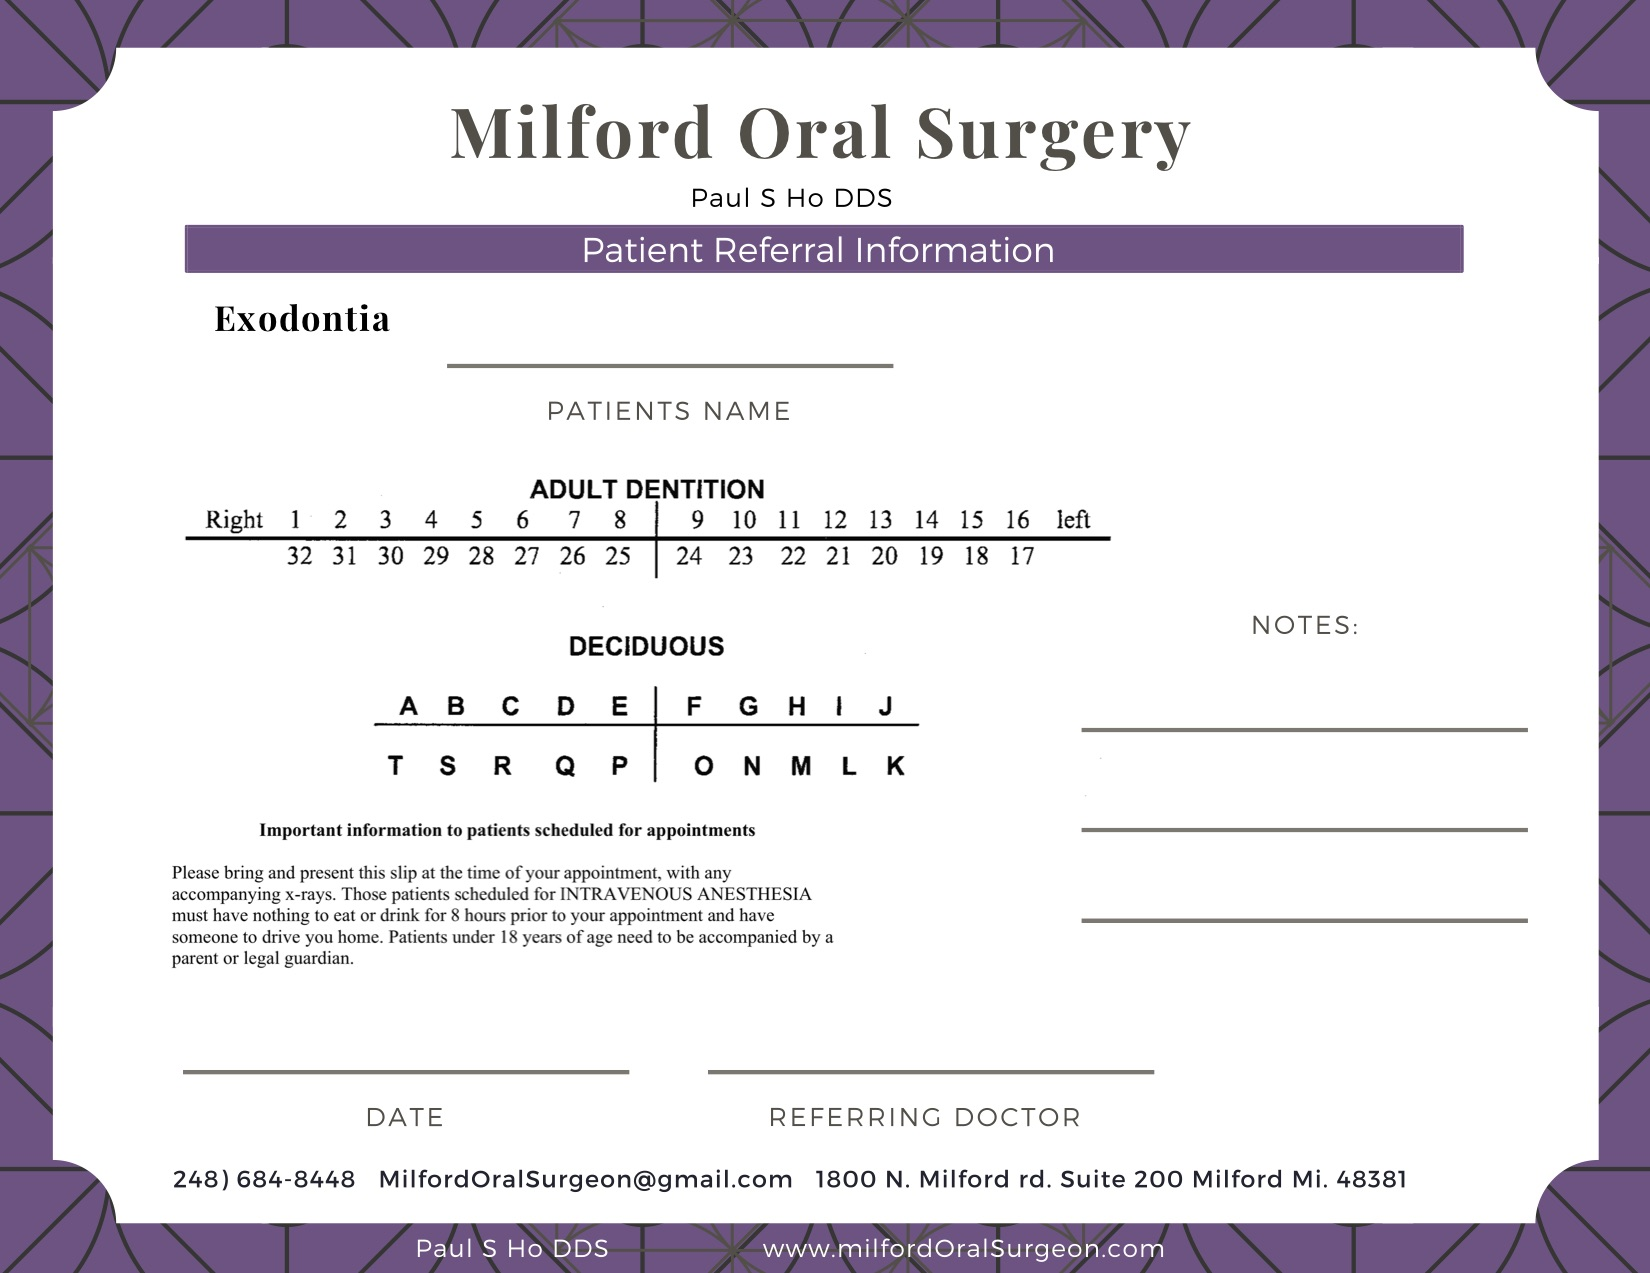 Dr. Ho referral slip.jpg